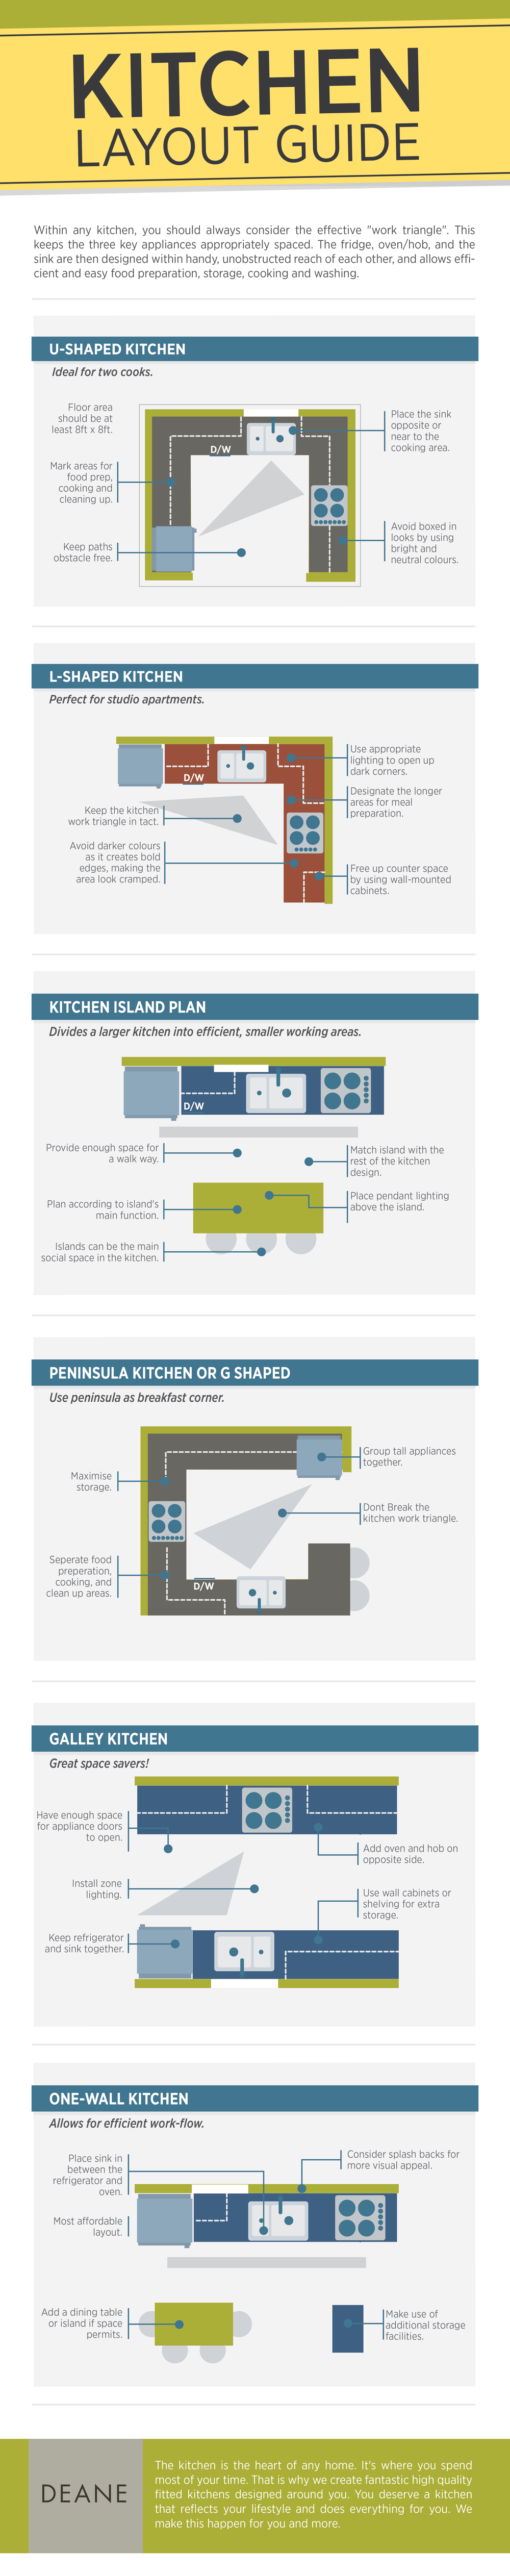 our handy kitchen layout guide